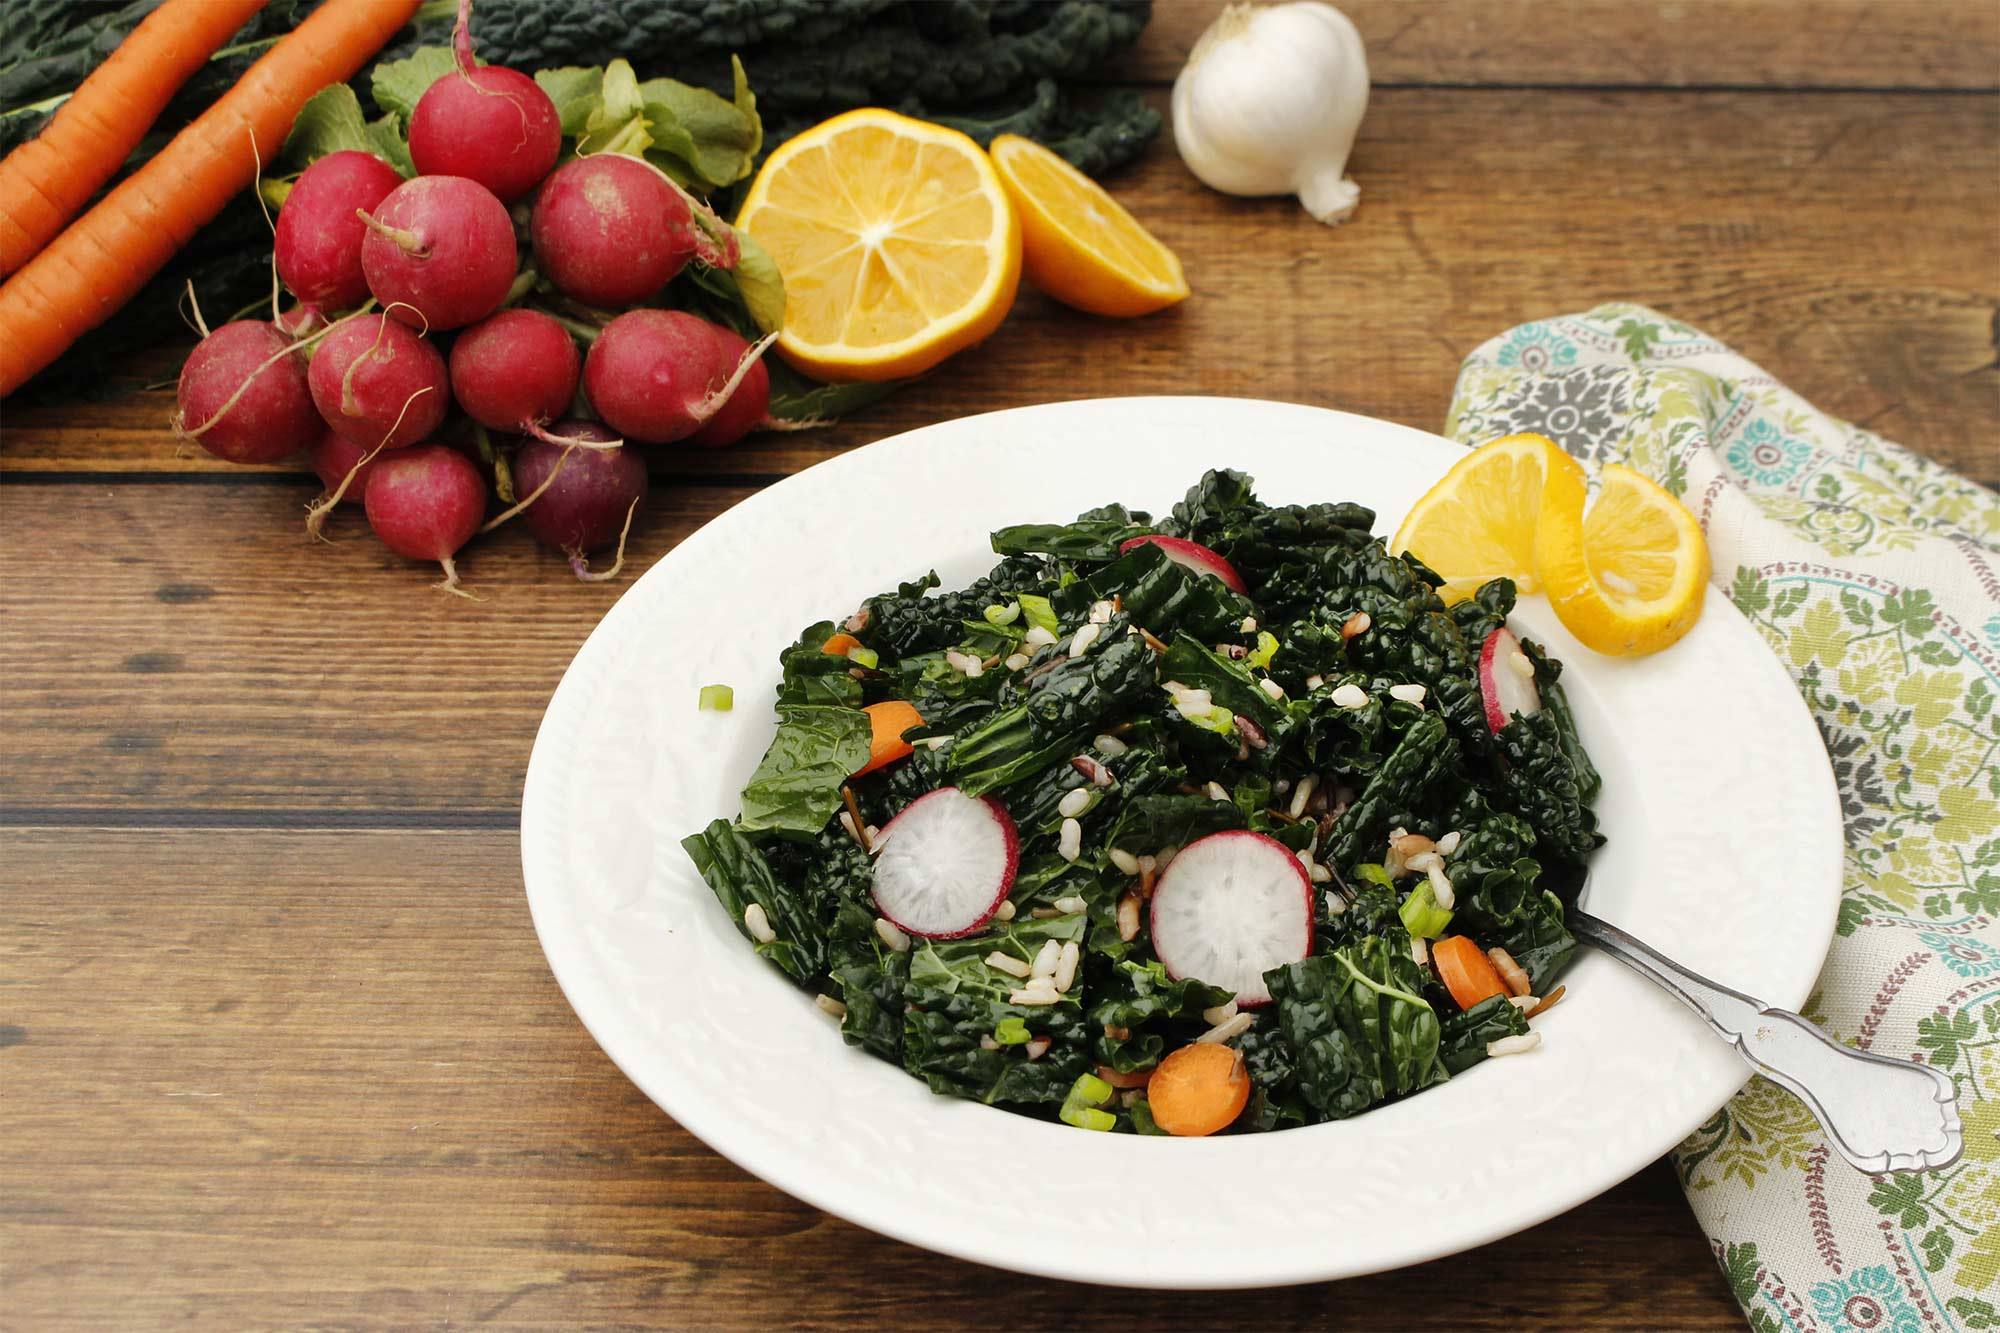 Wild Rice and Lacinato Kale Salad